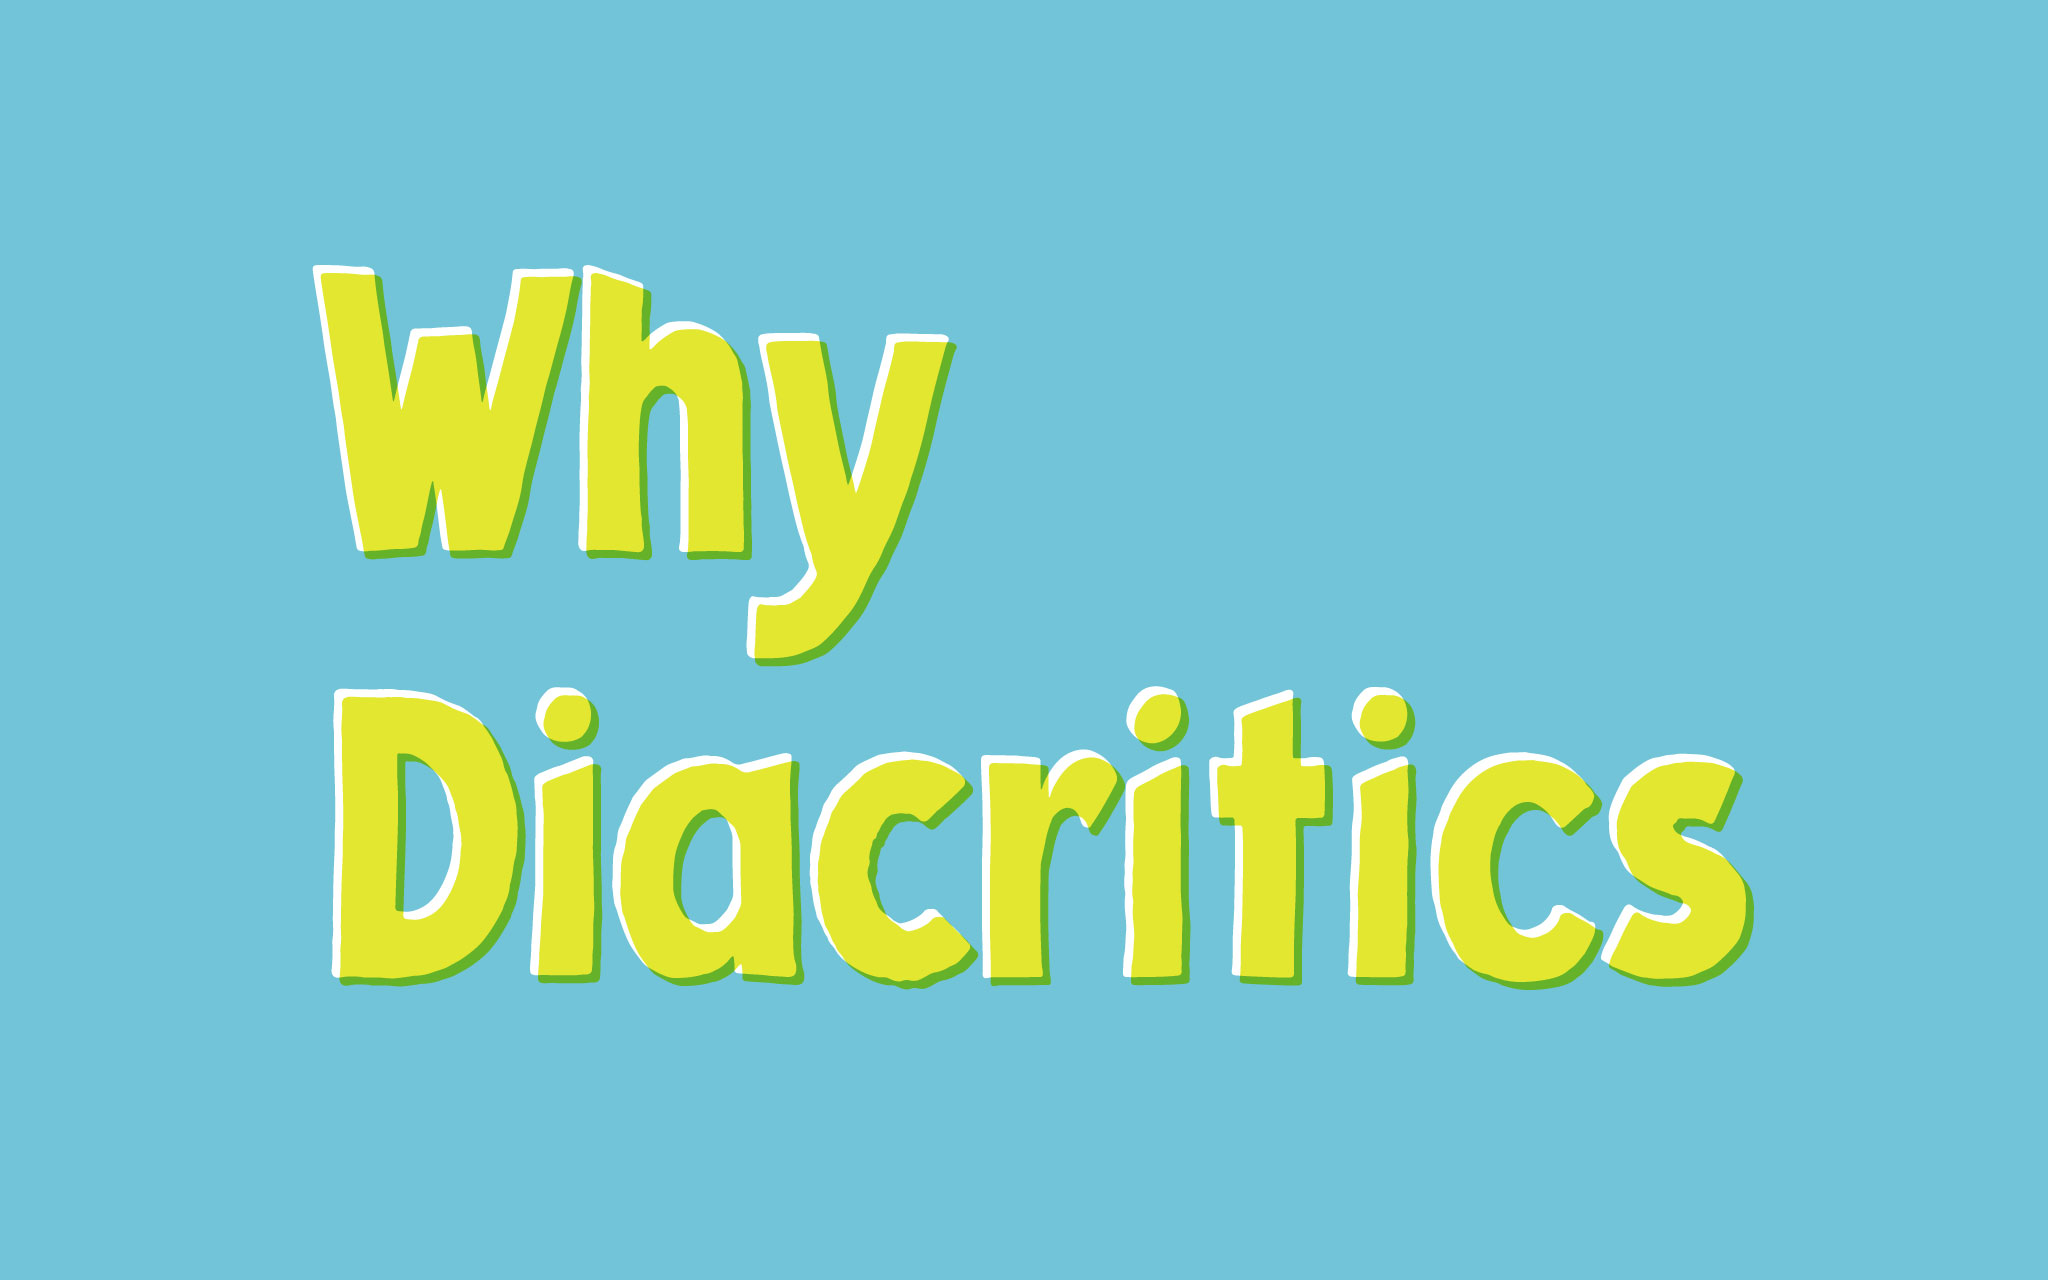 Why should I bother with diacritics?